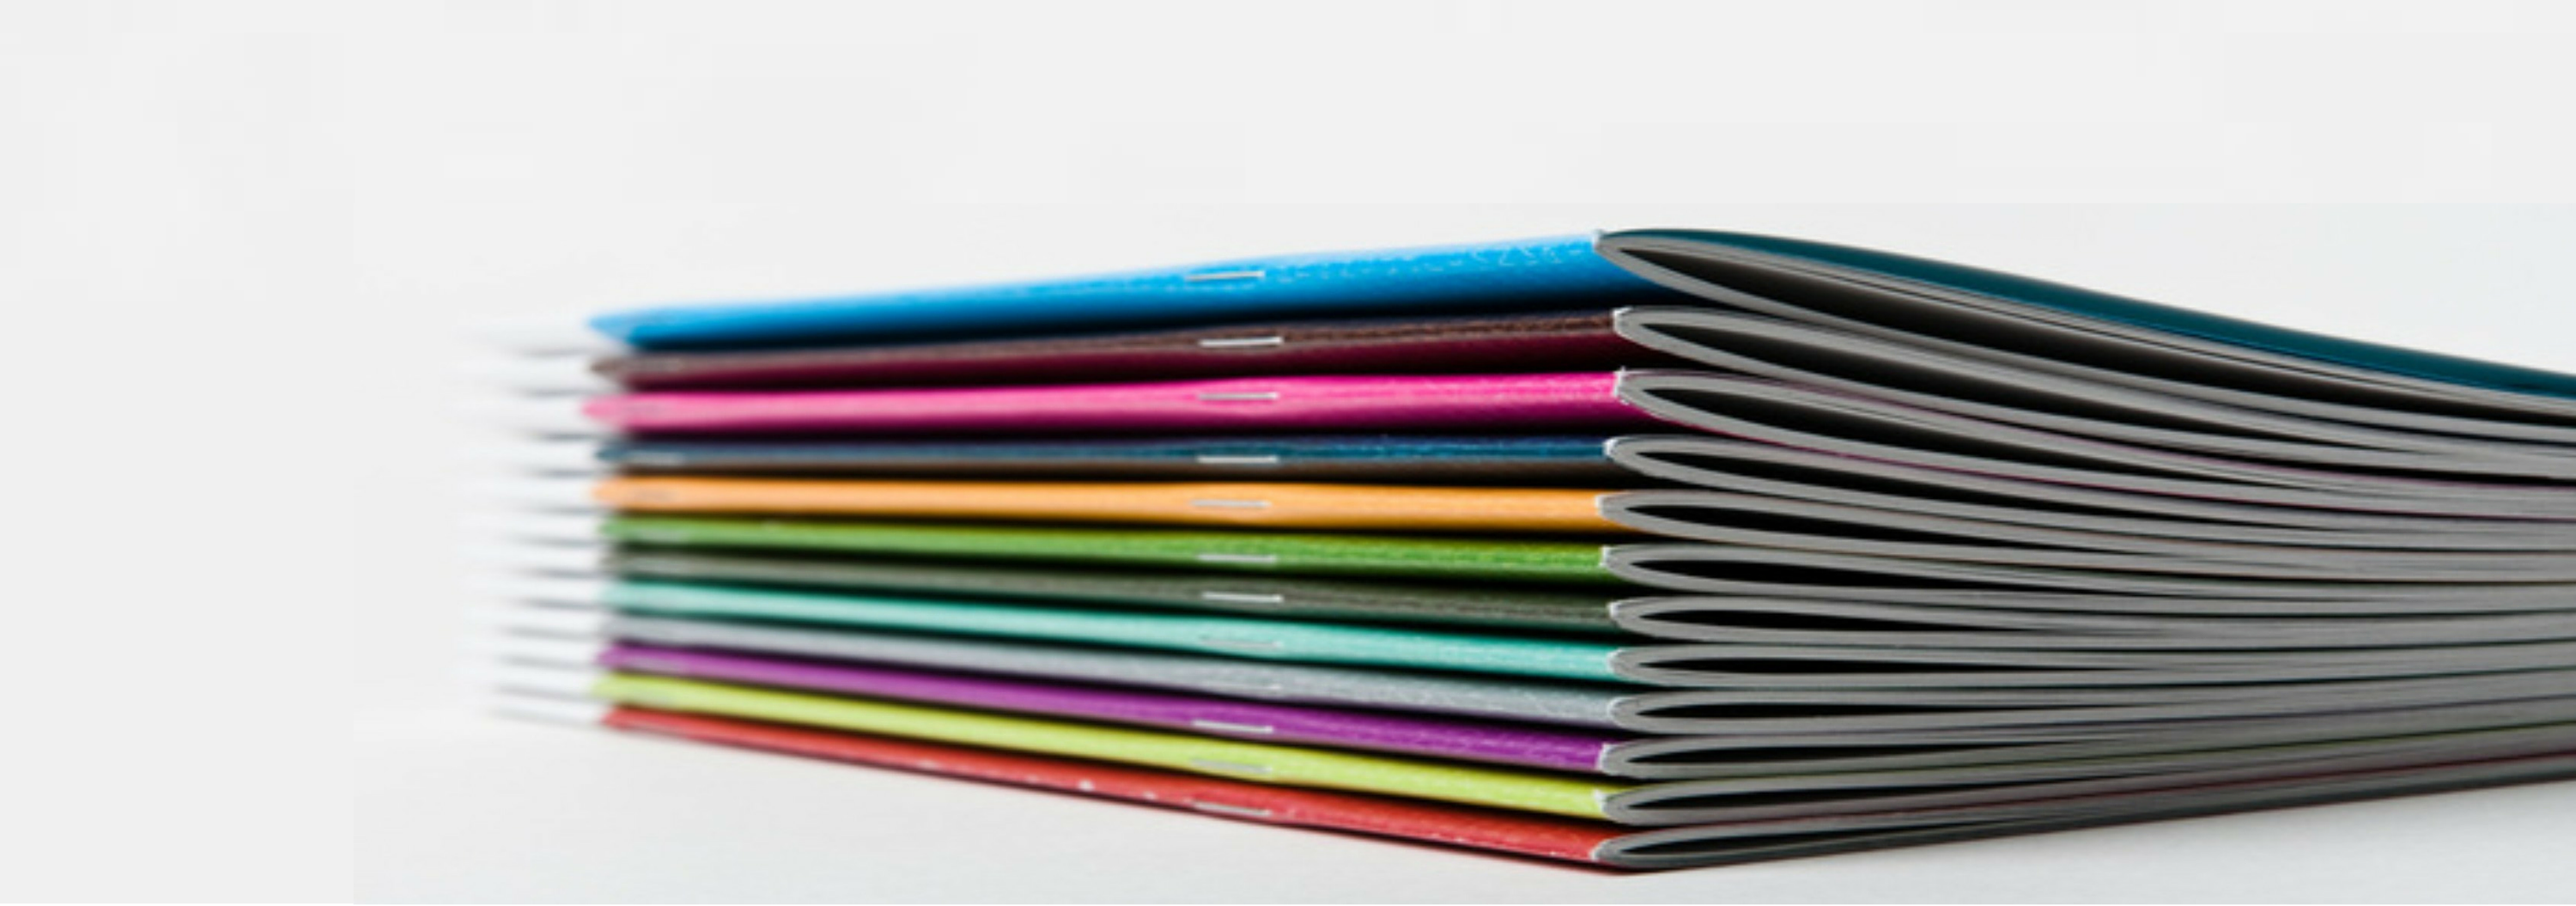 Things to Consider When Printing Brochures